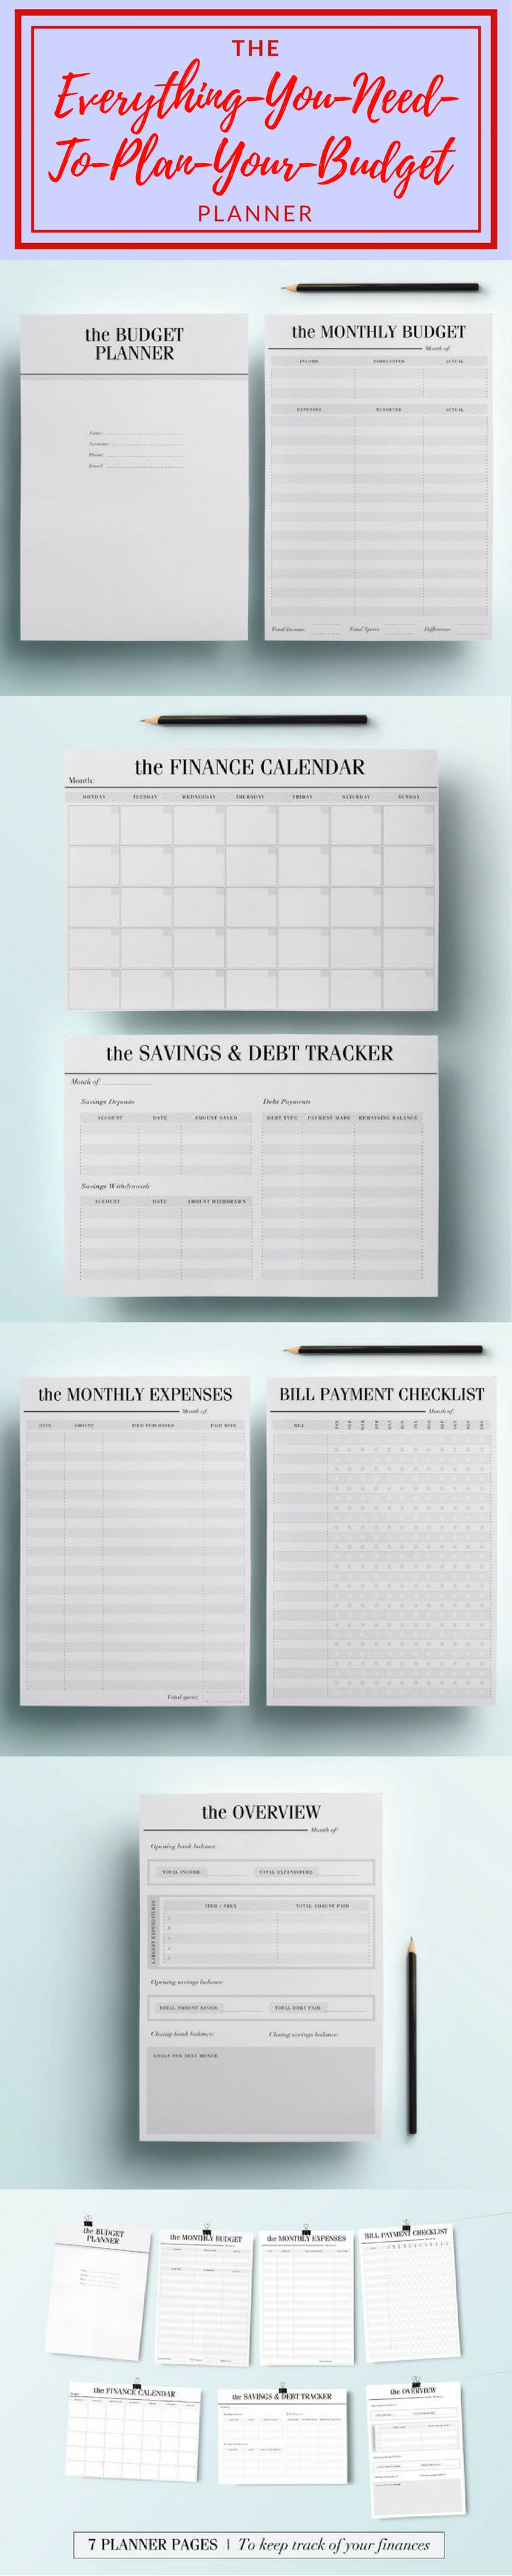 I love this! A4 Budget Planner Kit - Printable Financial Planning Set, 7 Modern Organizer Pages including Savings Tracker, Expenses etc, INSTANT DOWNLOAD #budgeting #affiliate